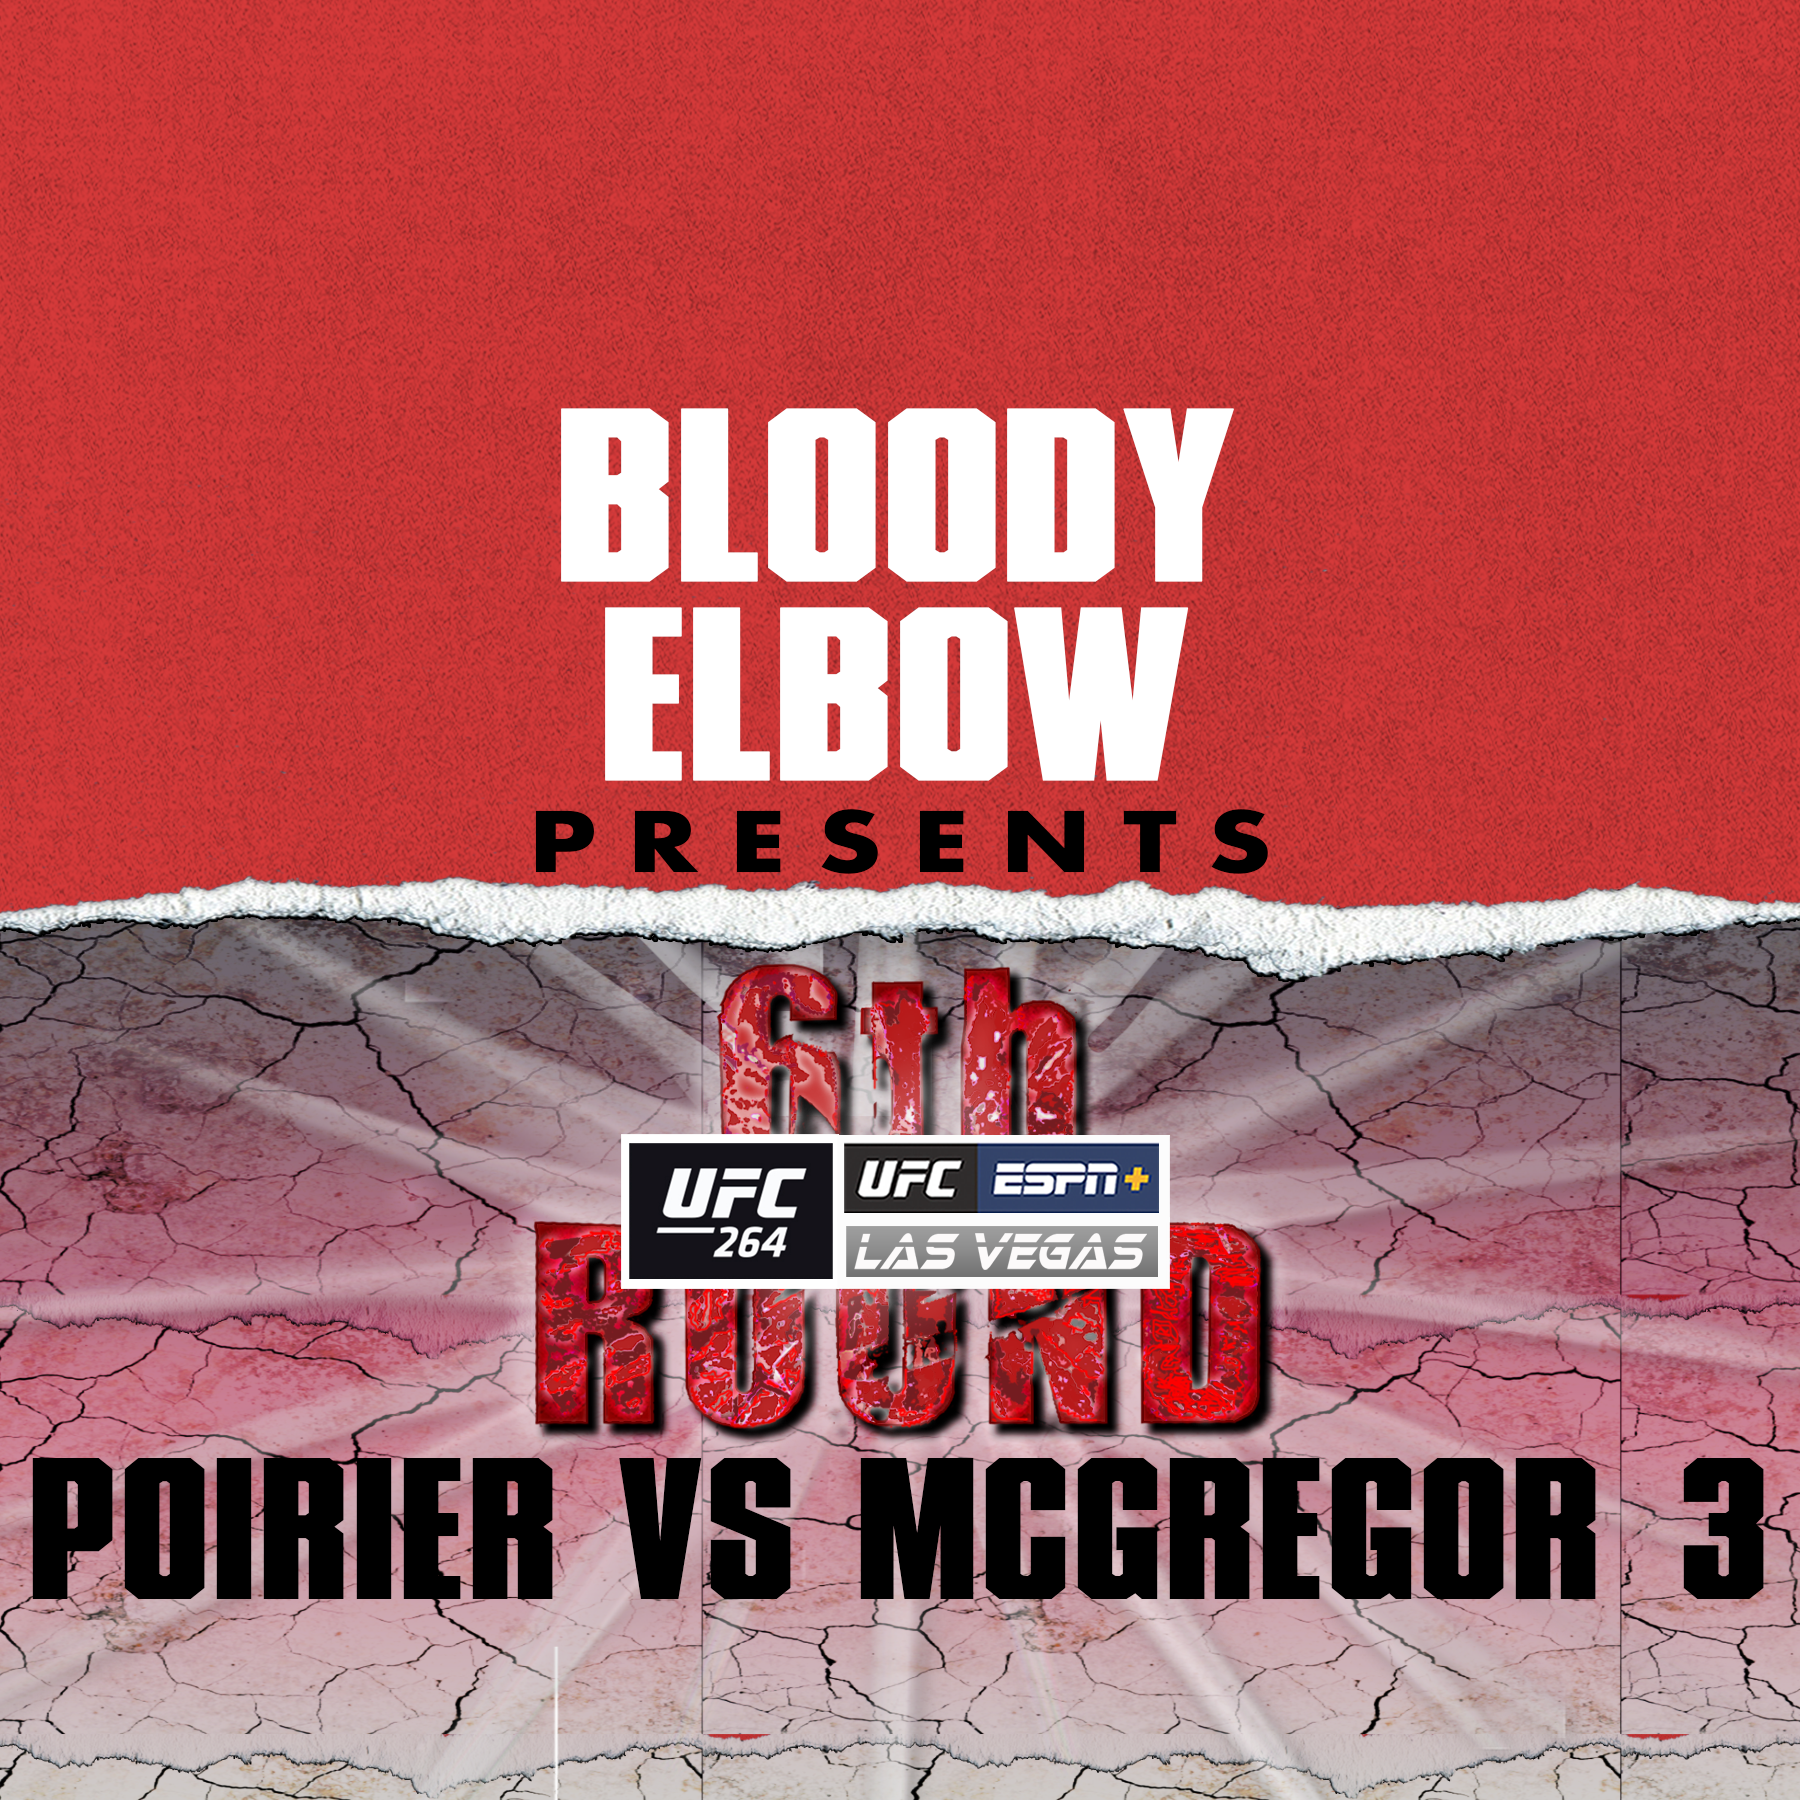 6th Round, The 6th Round Post-Fight Show, UFC 264, UFC 264 Post Fight Show, UFC Podcast, MMA Podcast, UFC Results, UFC Analysis, UFC Reactions, Poirier vs McGregor 3 Post Fight Show,